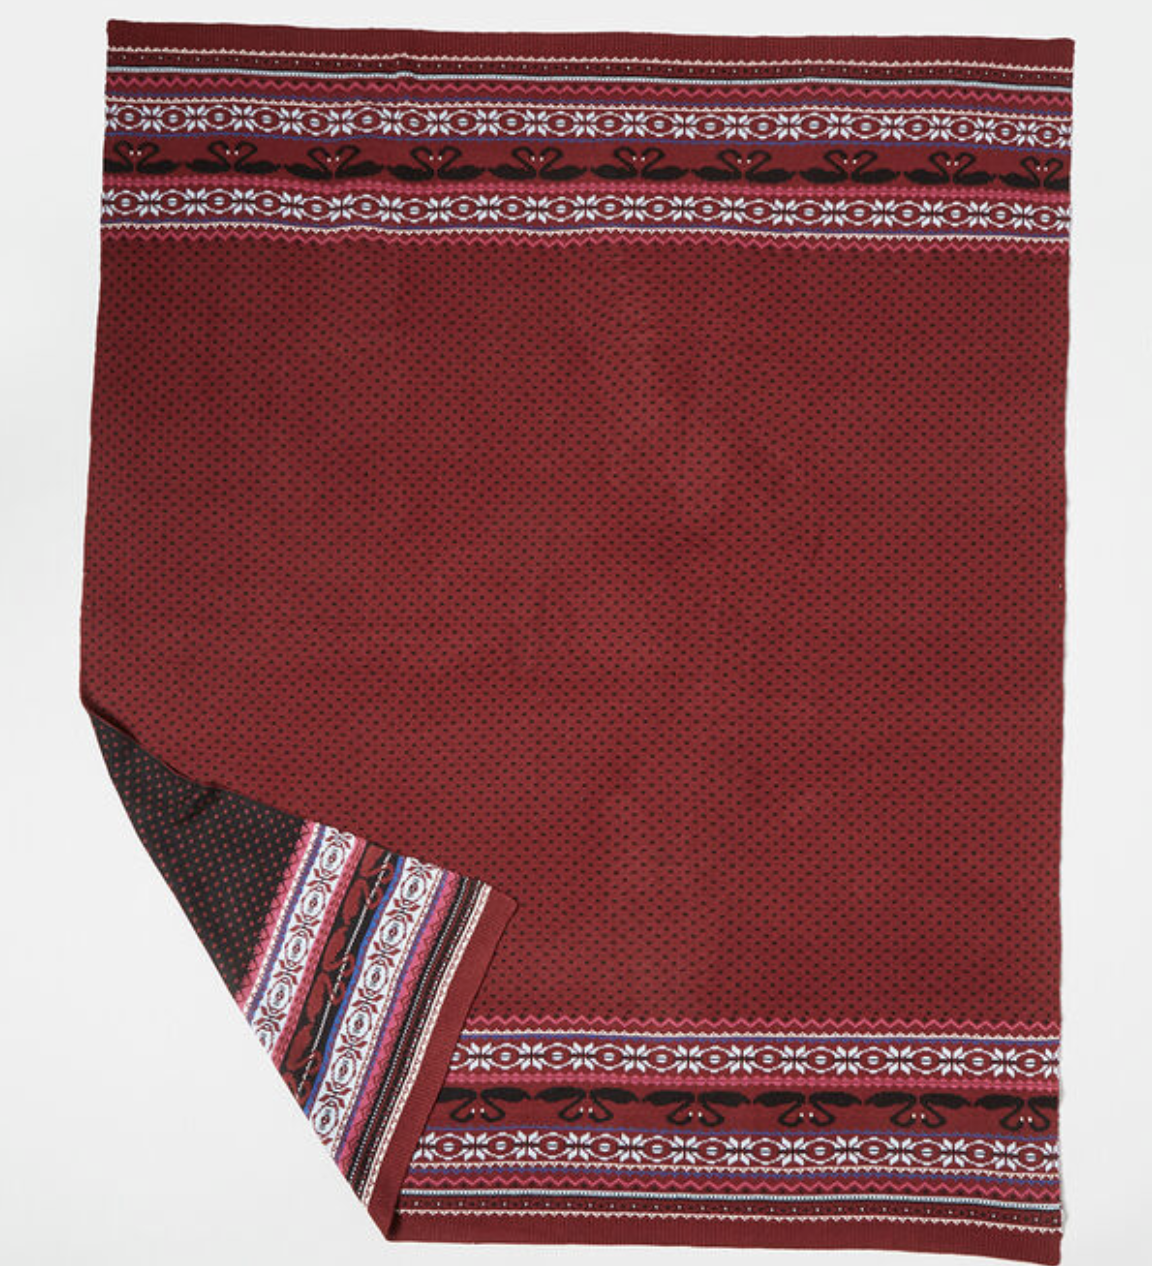 A red print blanket with black and white fair isle print at the borders